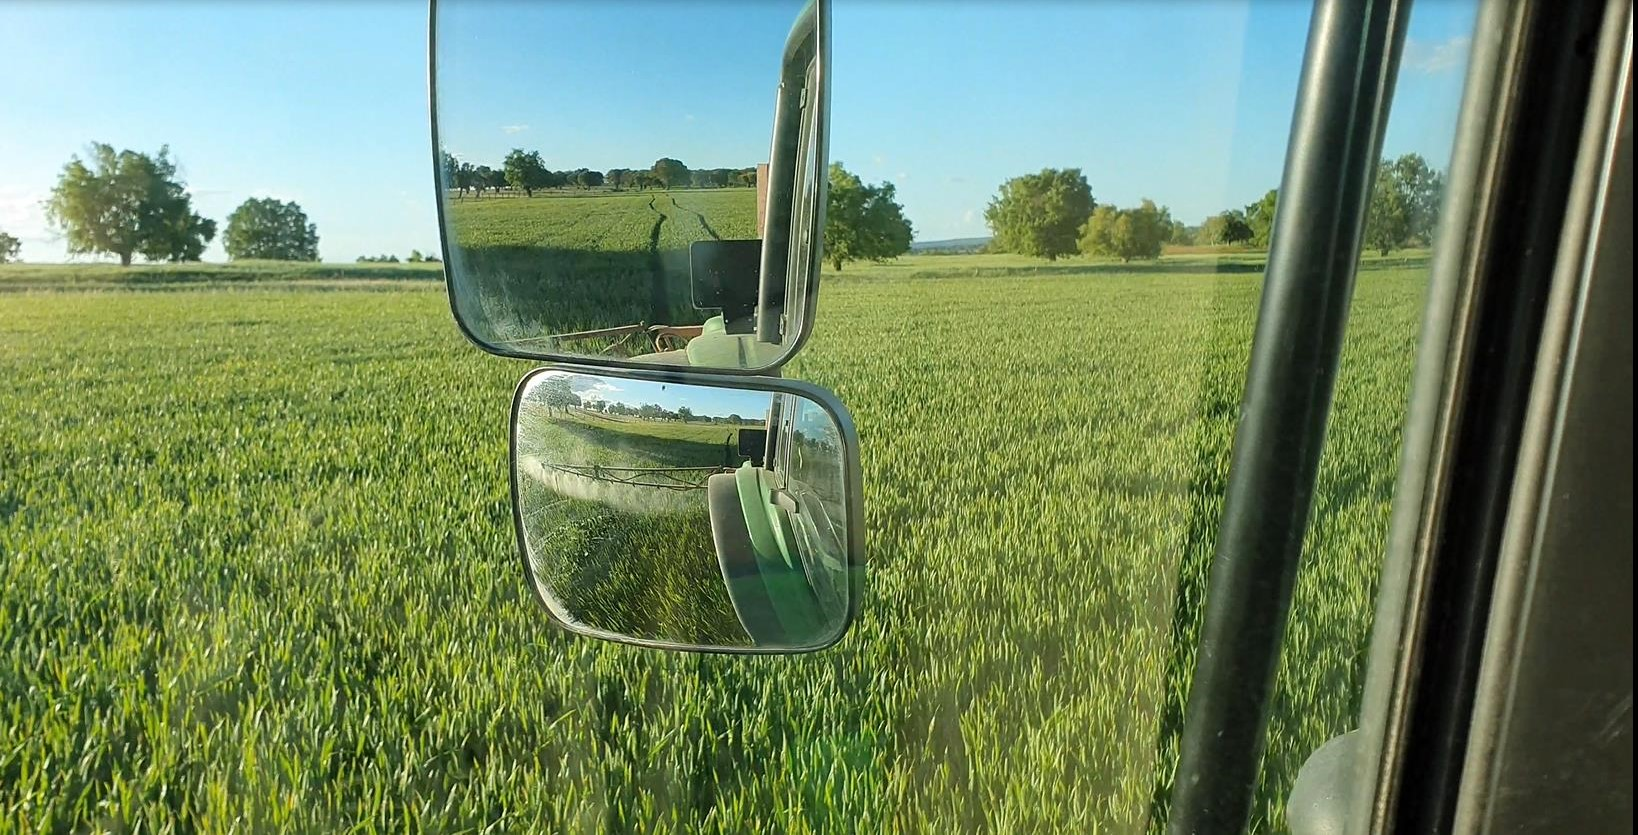 View from the cerealist's tractor